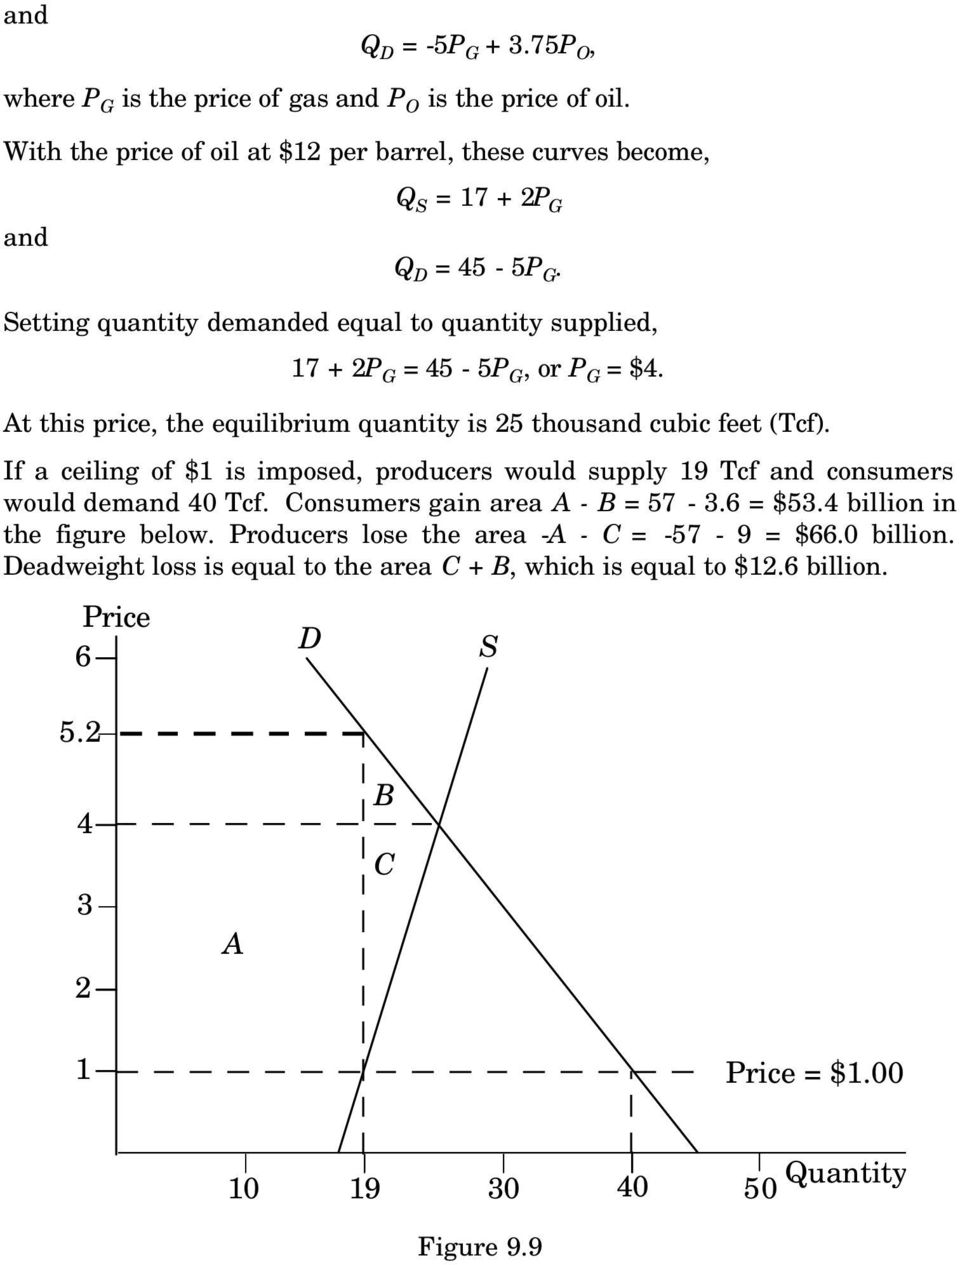 Setting quantity demanded equal to quantity supplied, 17 + 2P G = 45-5P G, or P G = $4. At this price, the equilibrium quantity is 25 thousand cubic feet (Tcf).